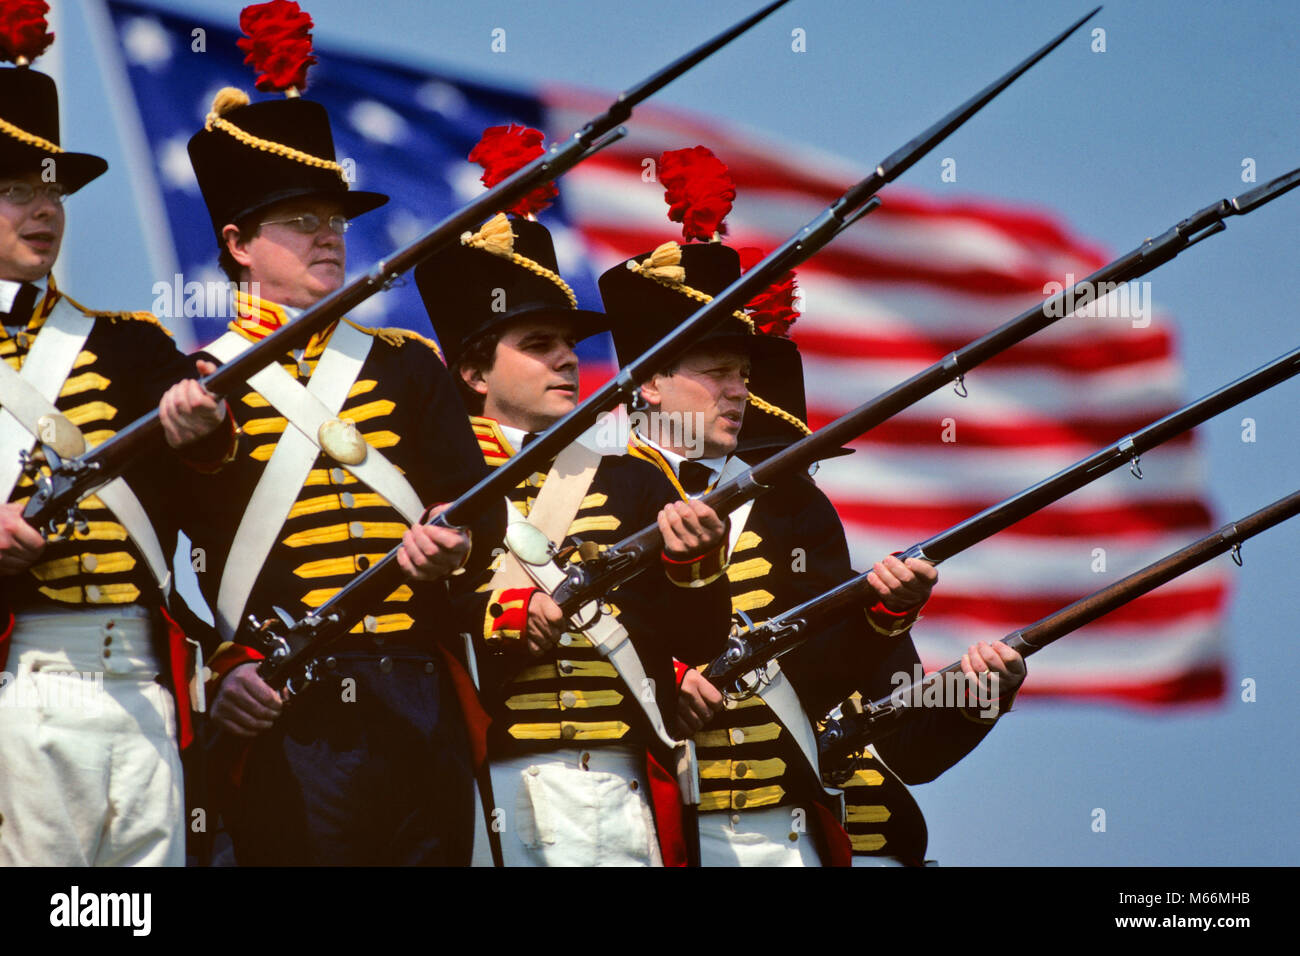 1980s WAR OF 1812 REENACTOR SOLDIERS FORT McHENRY BALTIMORE MARYLAND USA - kh9760 BLE001 HARS HALF-LENGTH INSPIRATION - Stock Image